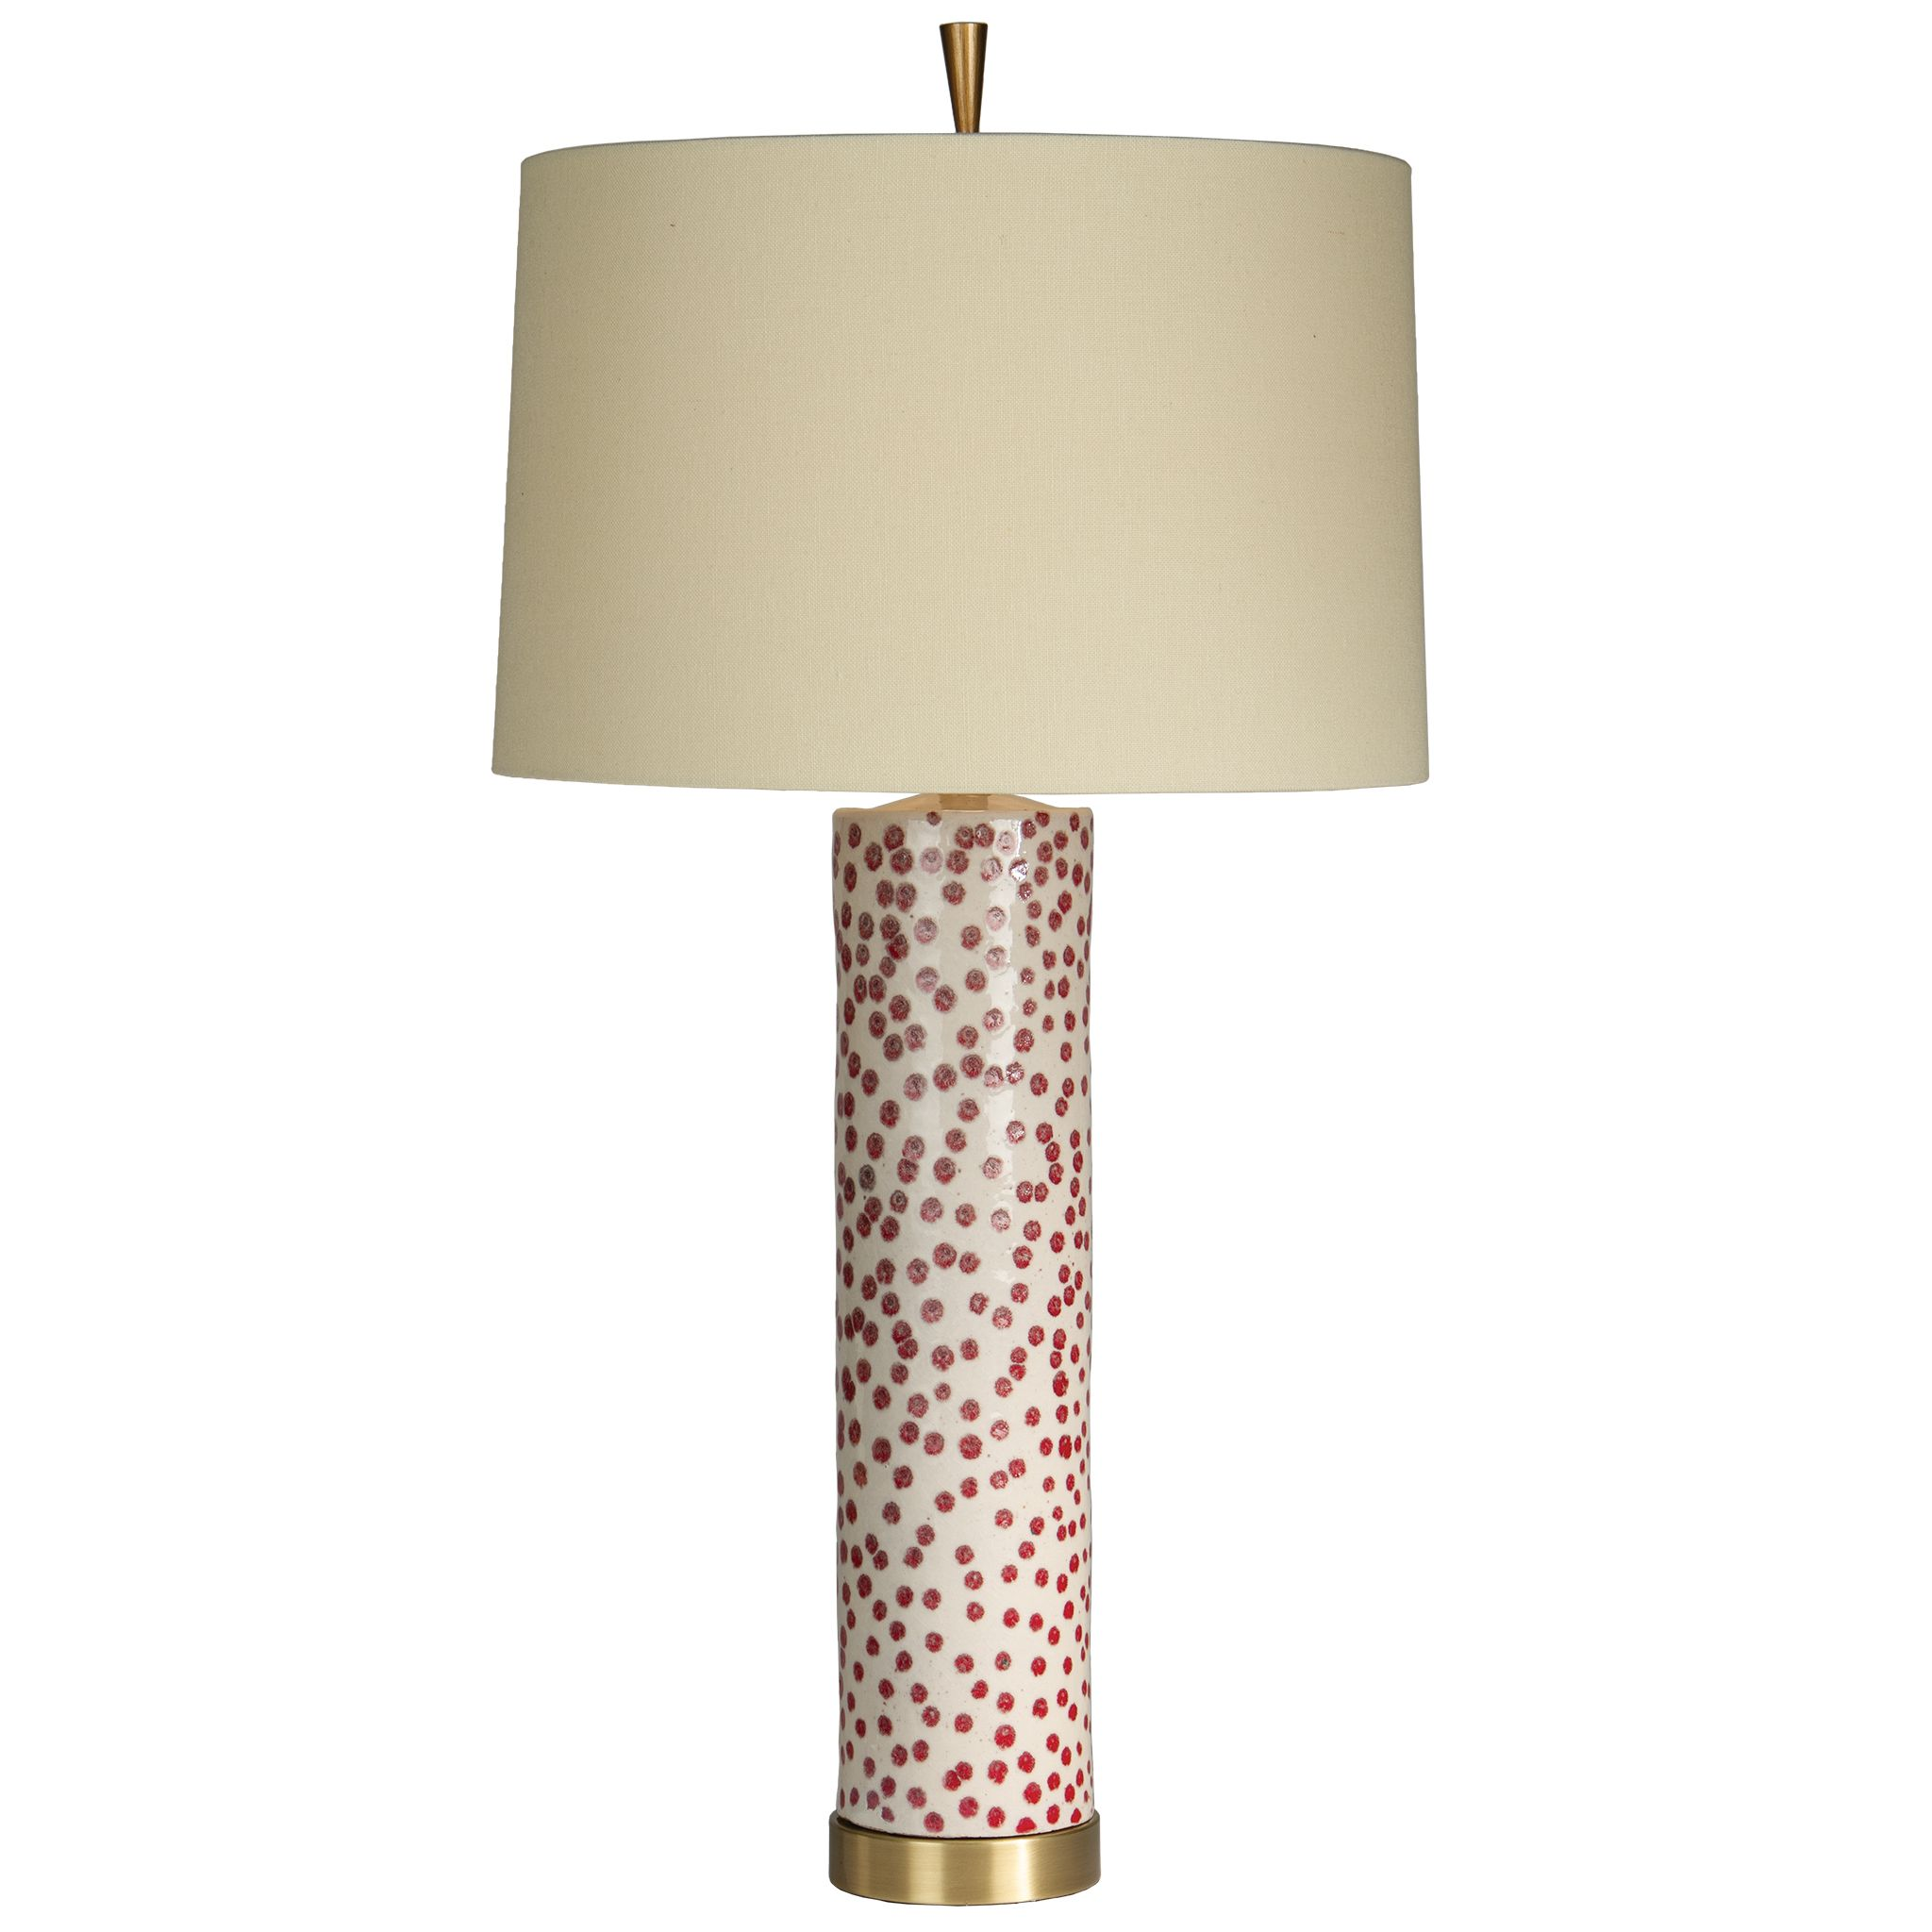 Spotted Lamp In 2020 Lamp Cool Lamps Photo Inspiration